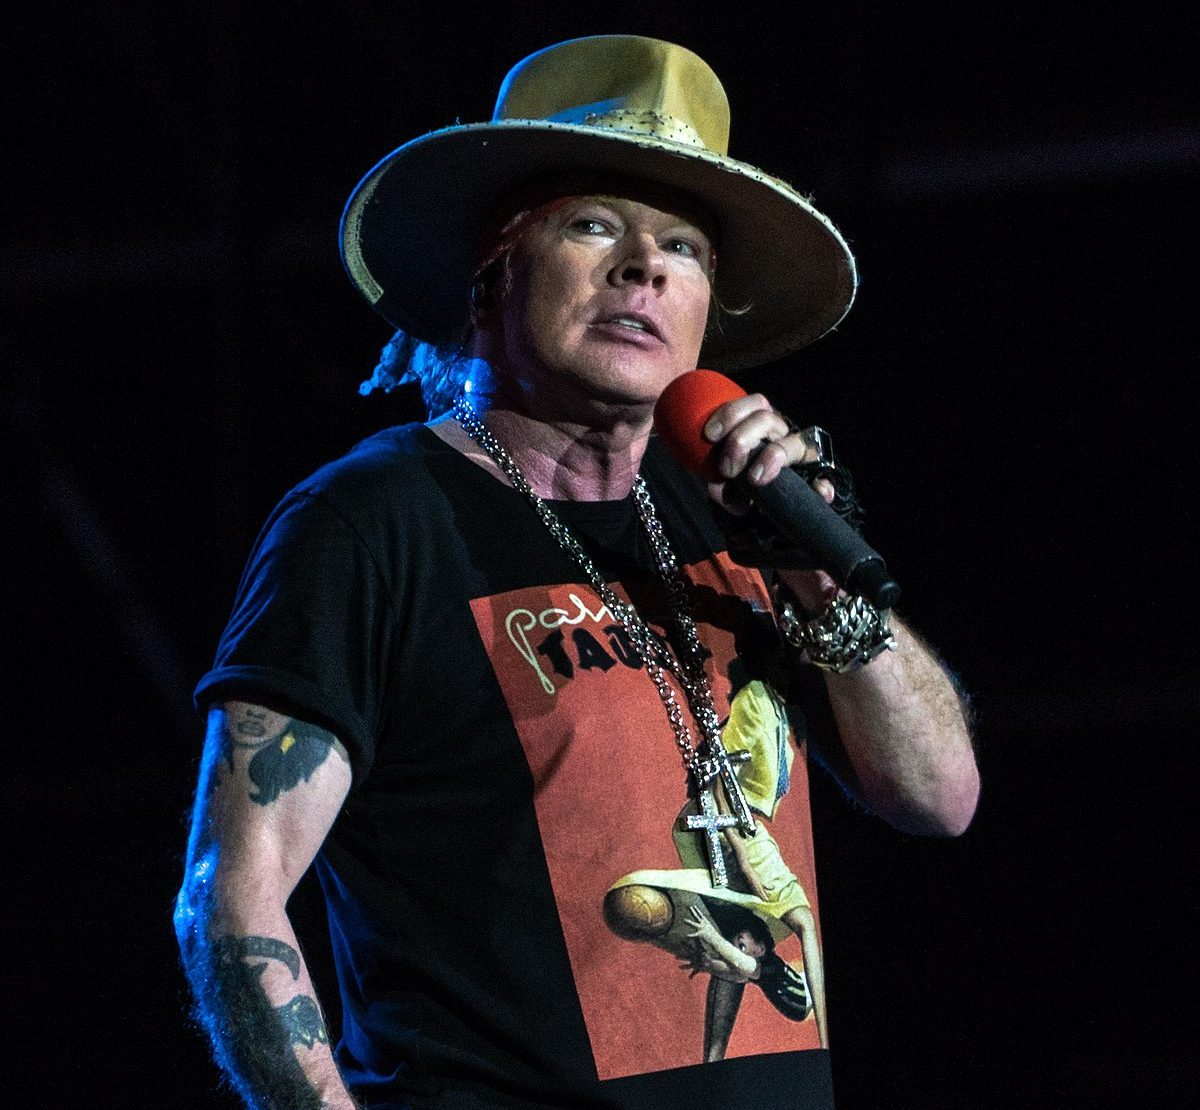 69 e1604329265386 20 Things You Never Knew About Guns N' Roses